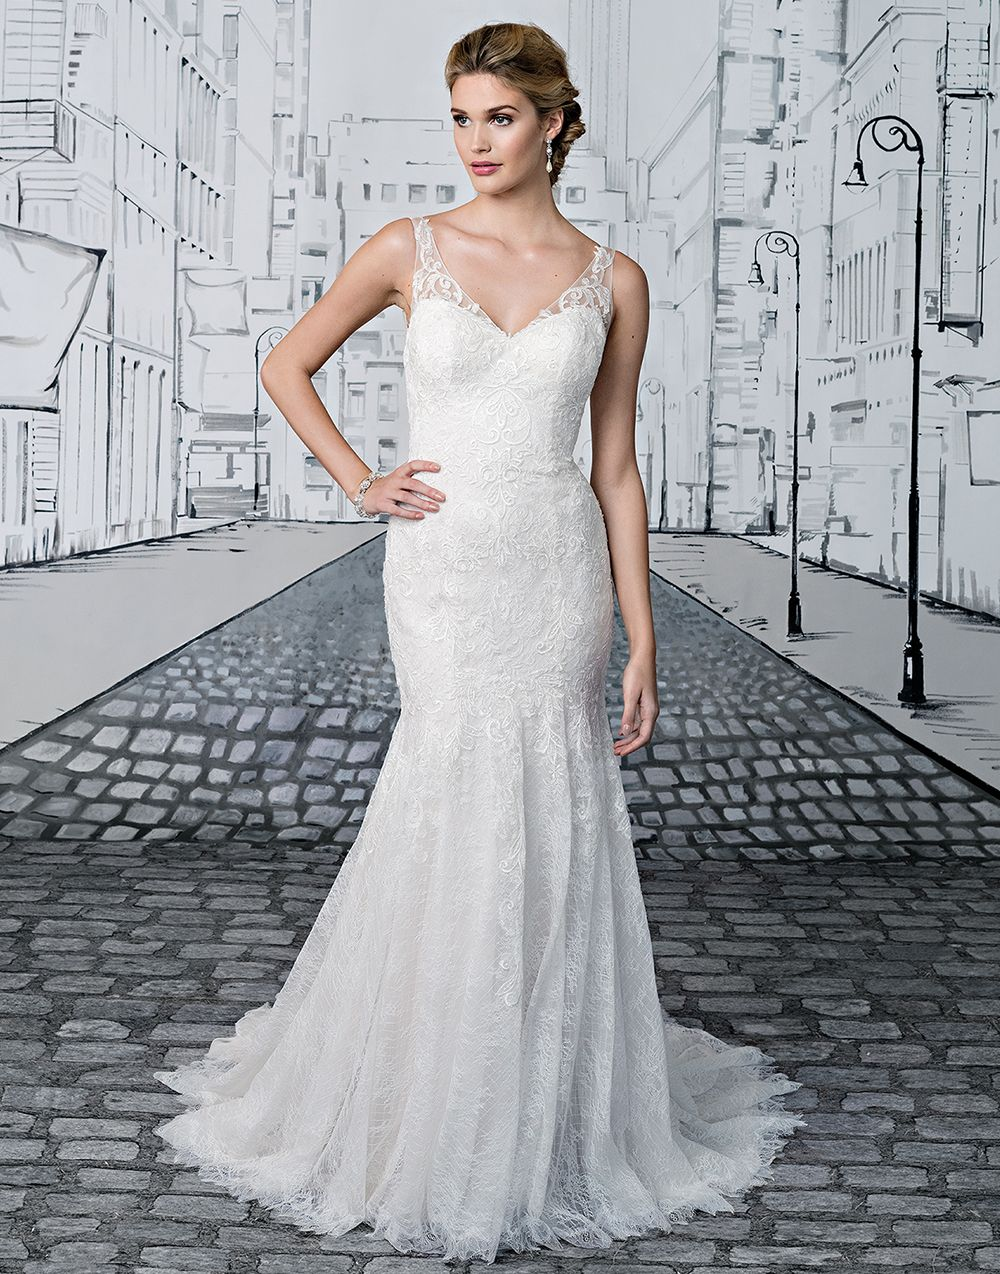 7f2b2674ae Justin Alexander wedding dresses style 8890 Ivory Size 10 The perfect touch  of glamour is achieved by timeless embellishments. V-neck fit and flare gown  ...